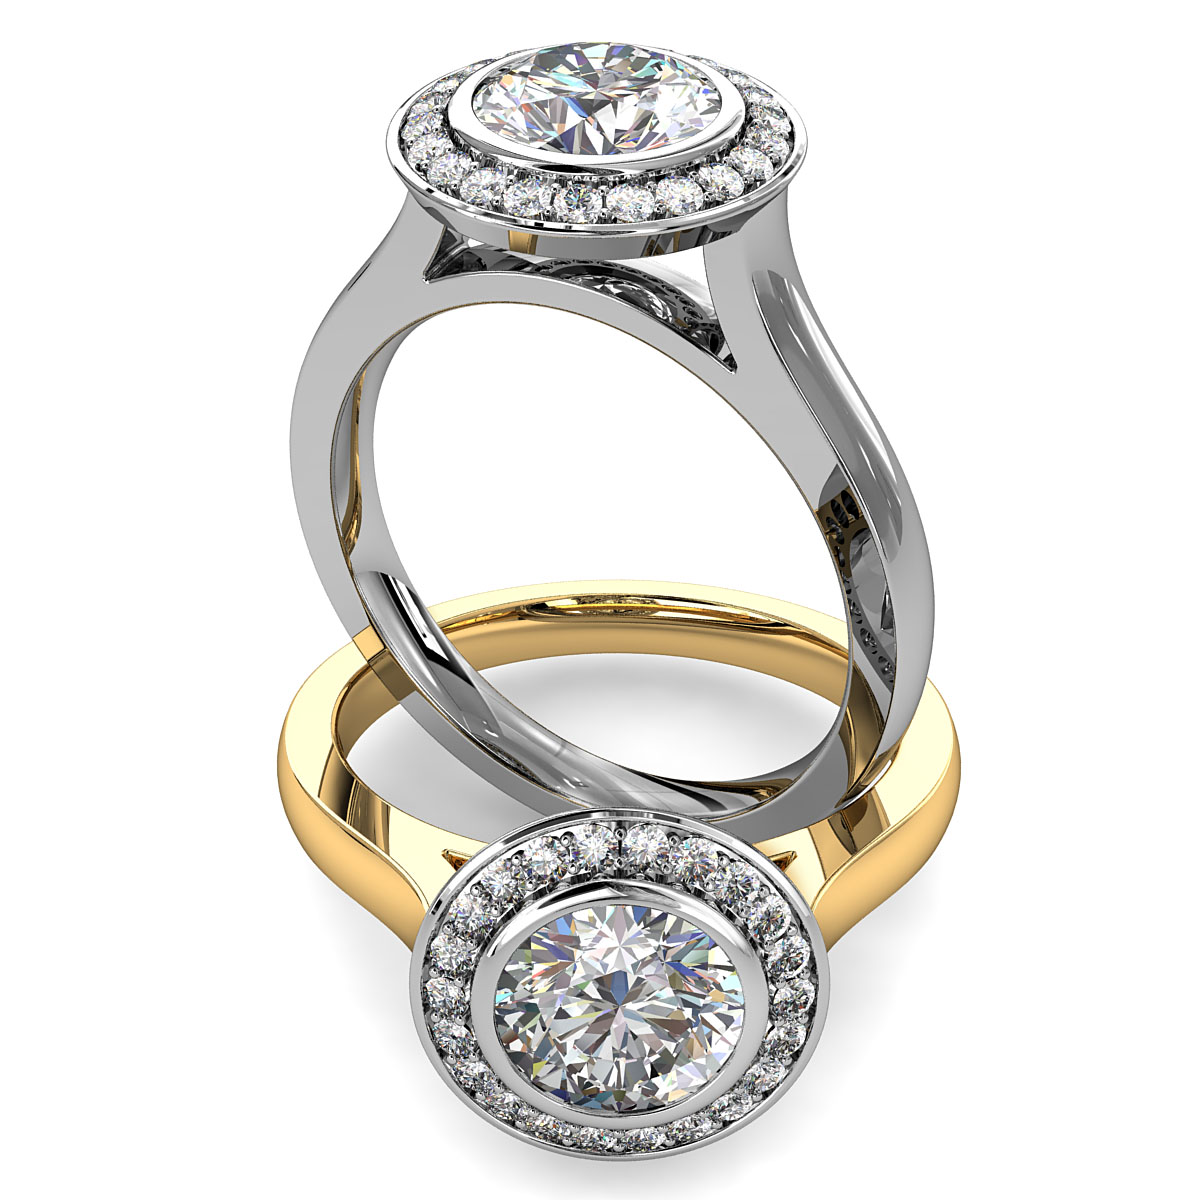 Round Brilliant Cut Halo Diamond Engagement Ring, Bezel Set Centre Stone in a Fine Bead Set Halo on Flat Band with an Open Undersetting.